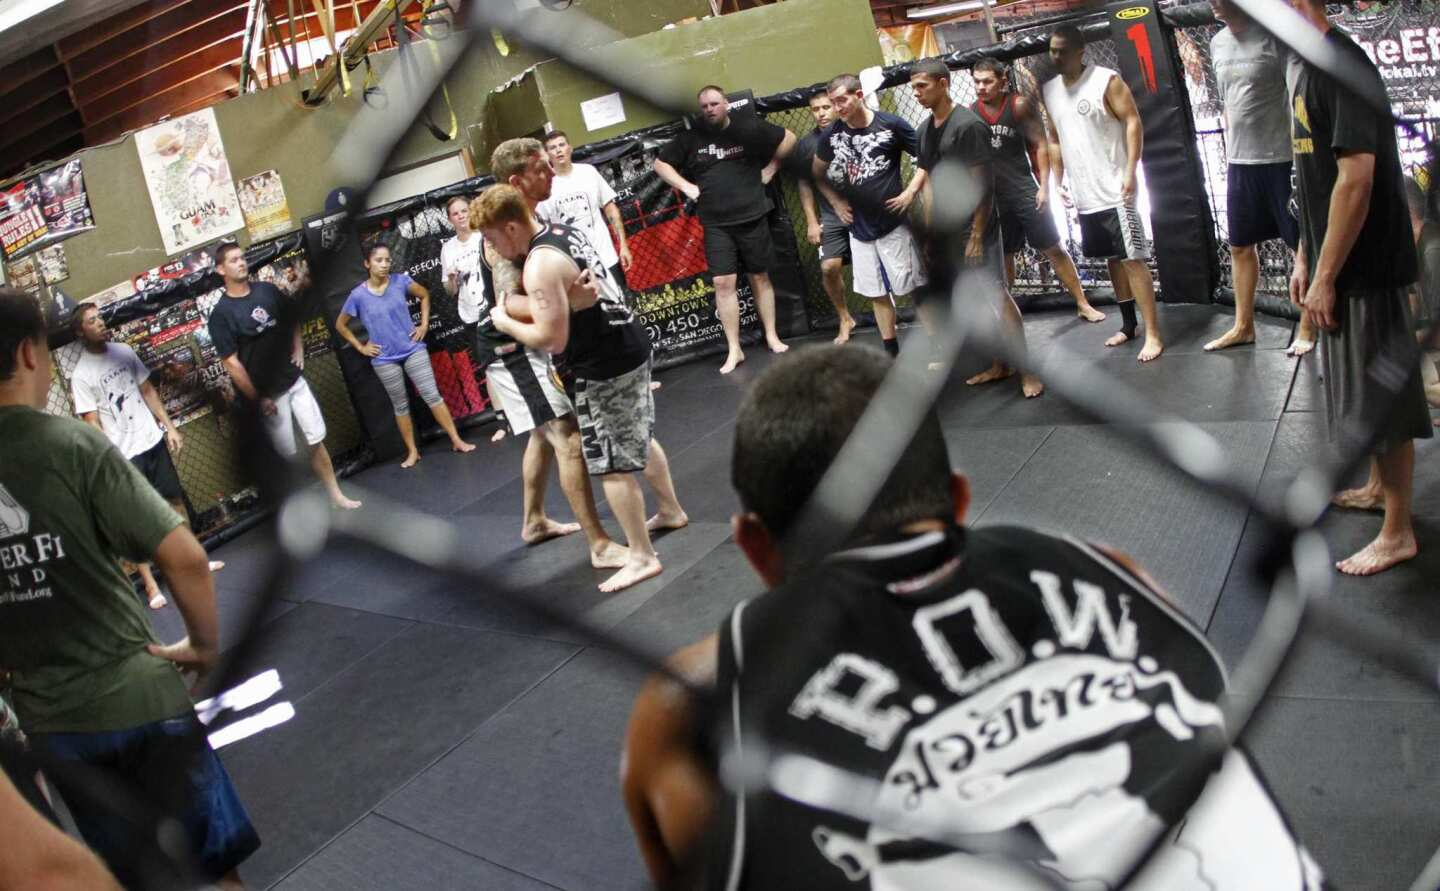 Inside the fight cage